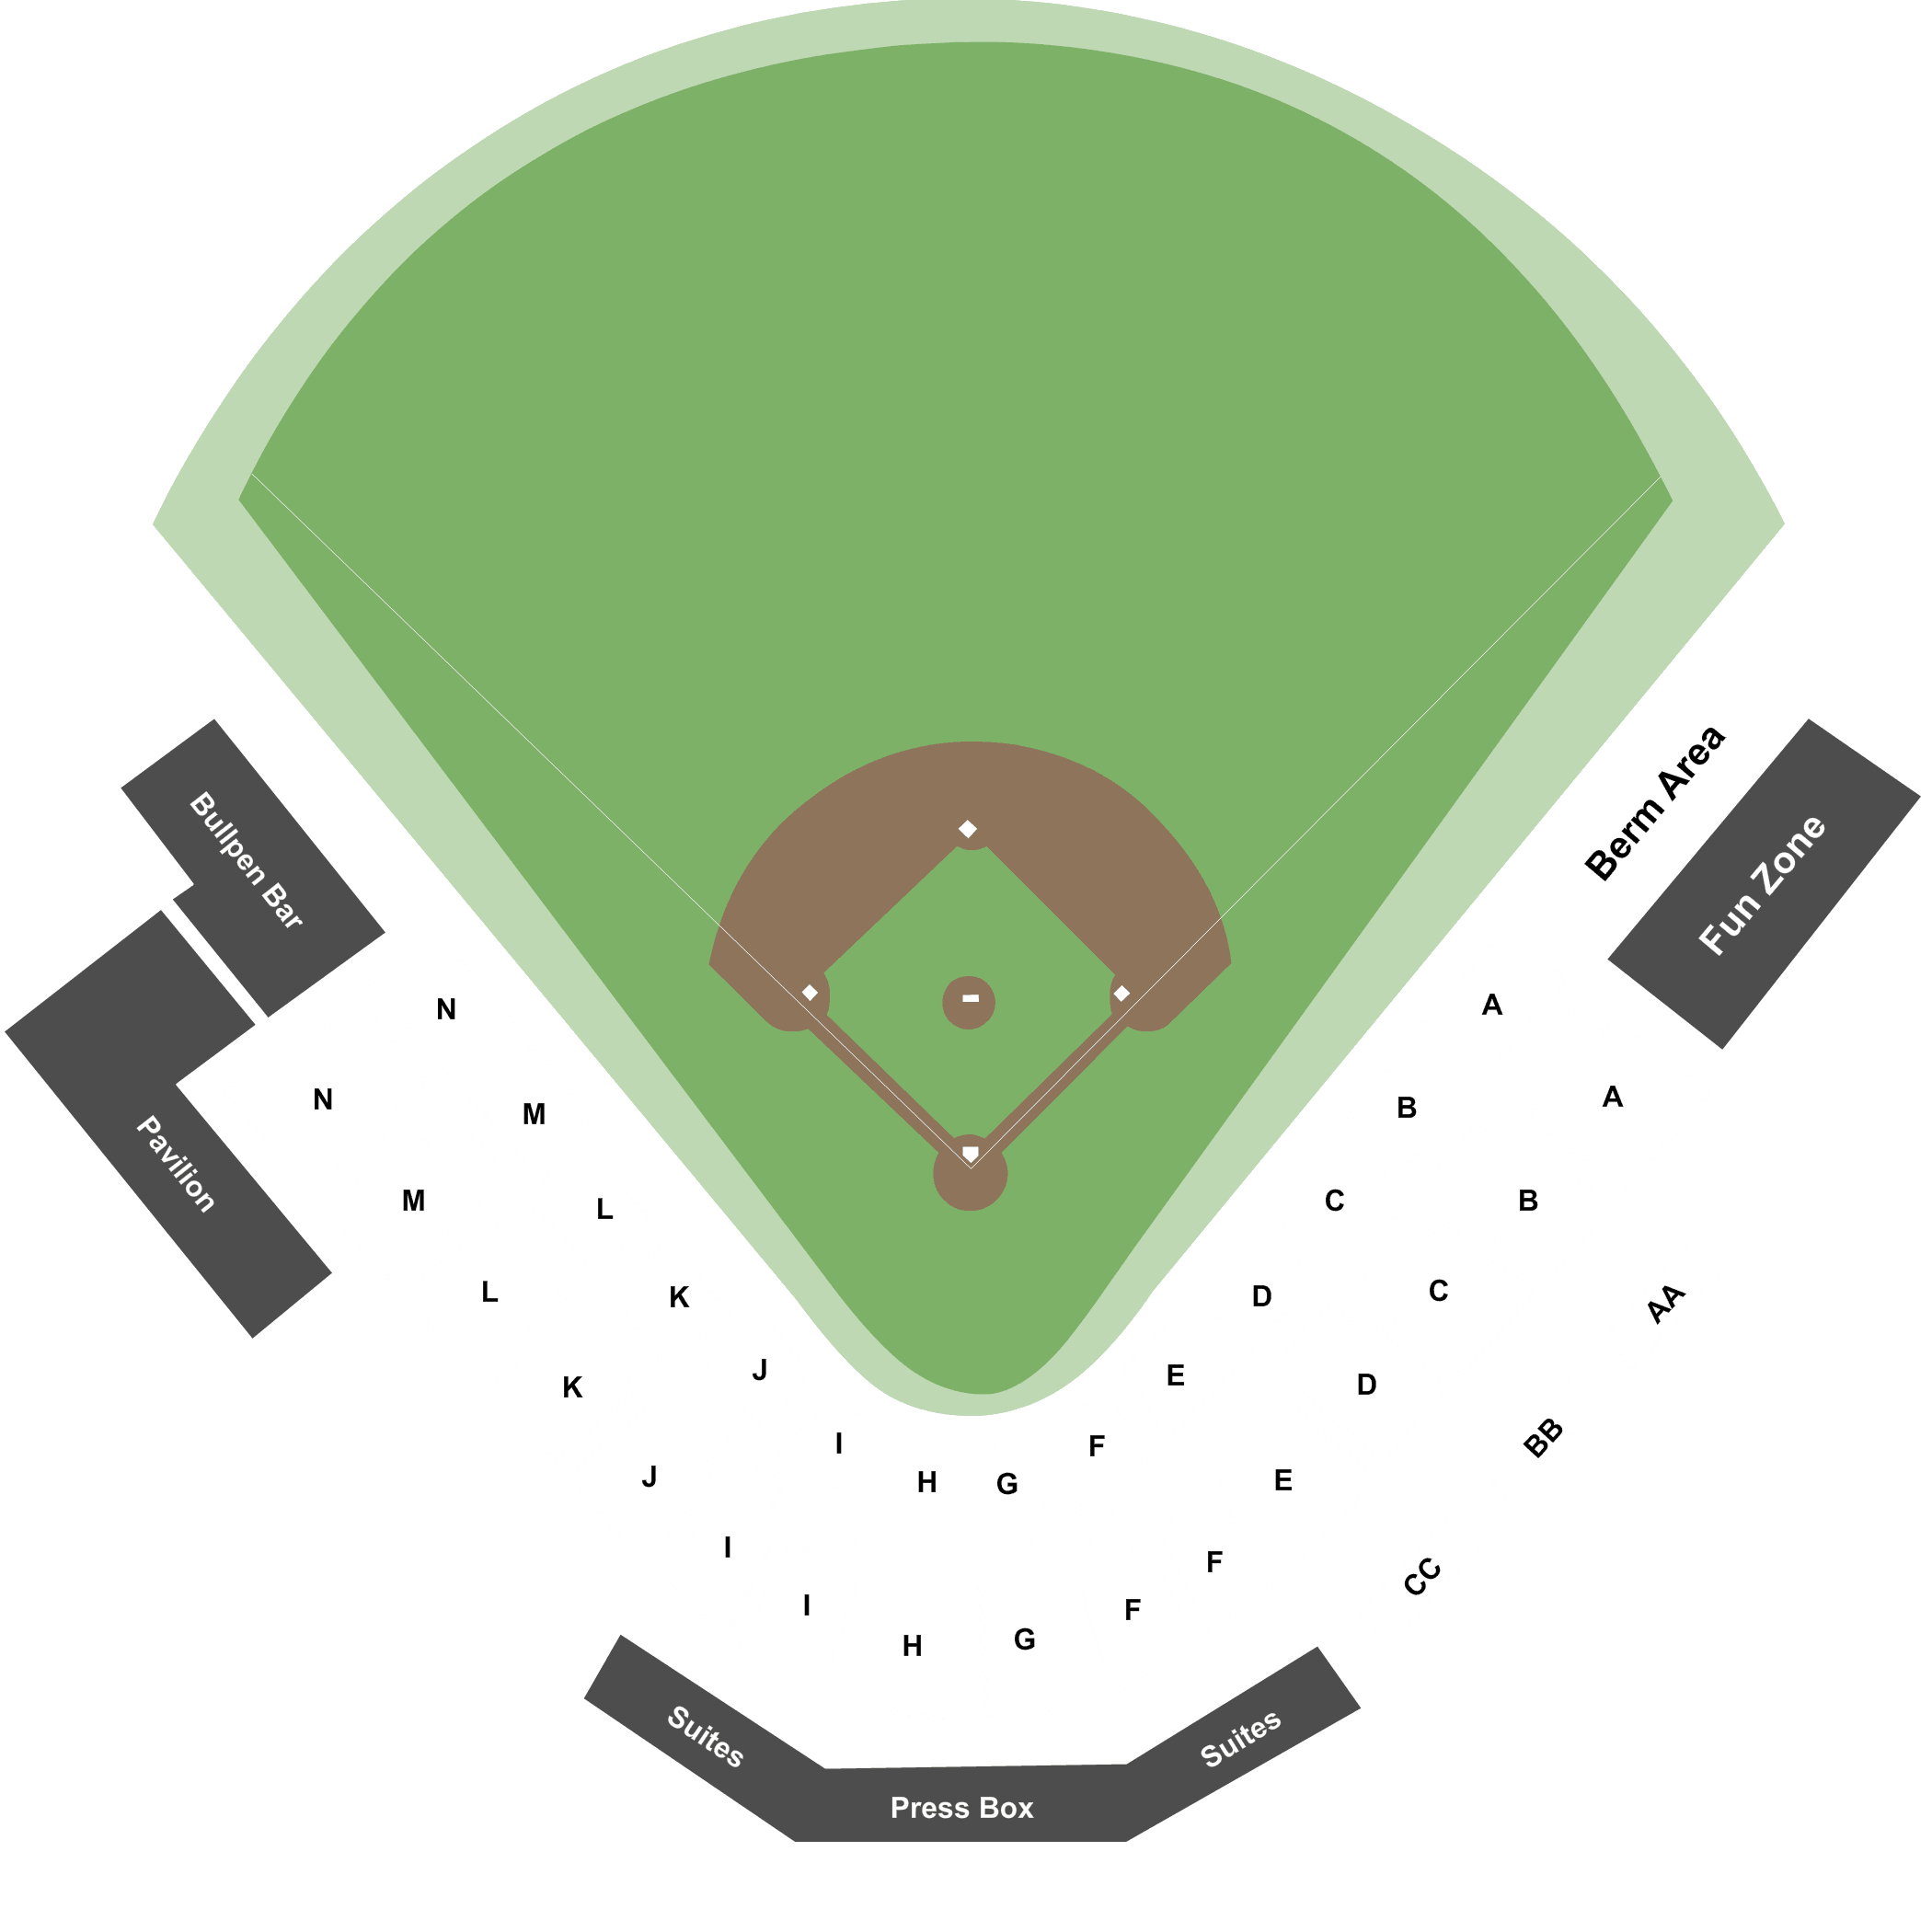 Ballpark At Jackson Png - Jackson Generals vs. Birmingham Barons Tickets | The Ballpark at ...